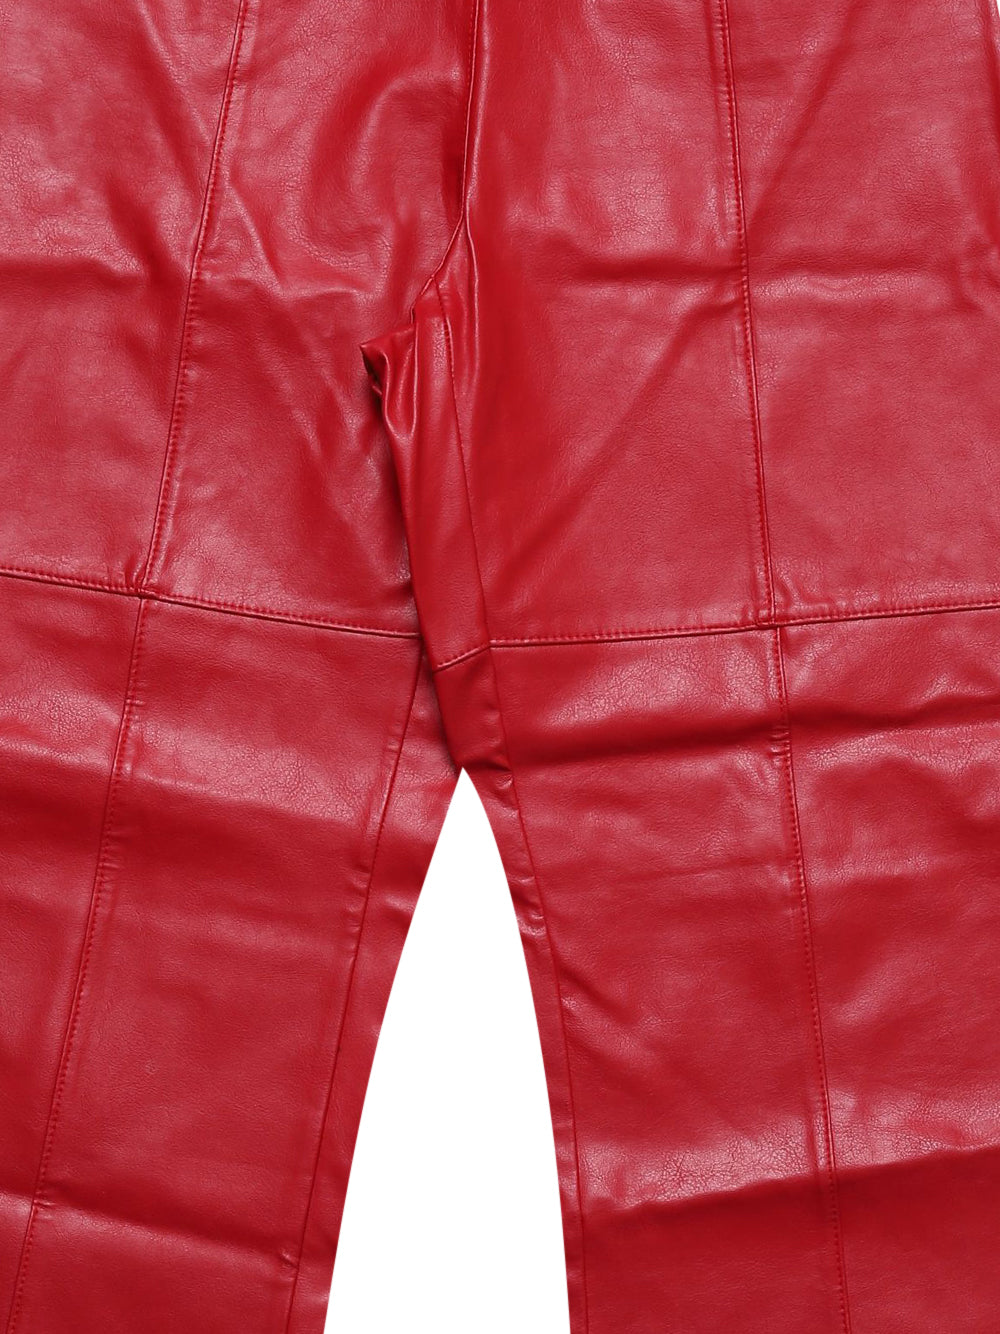 Detail photo of Preloved jolie jolie Red Woman's trousers - size 10/M